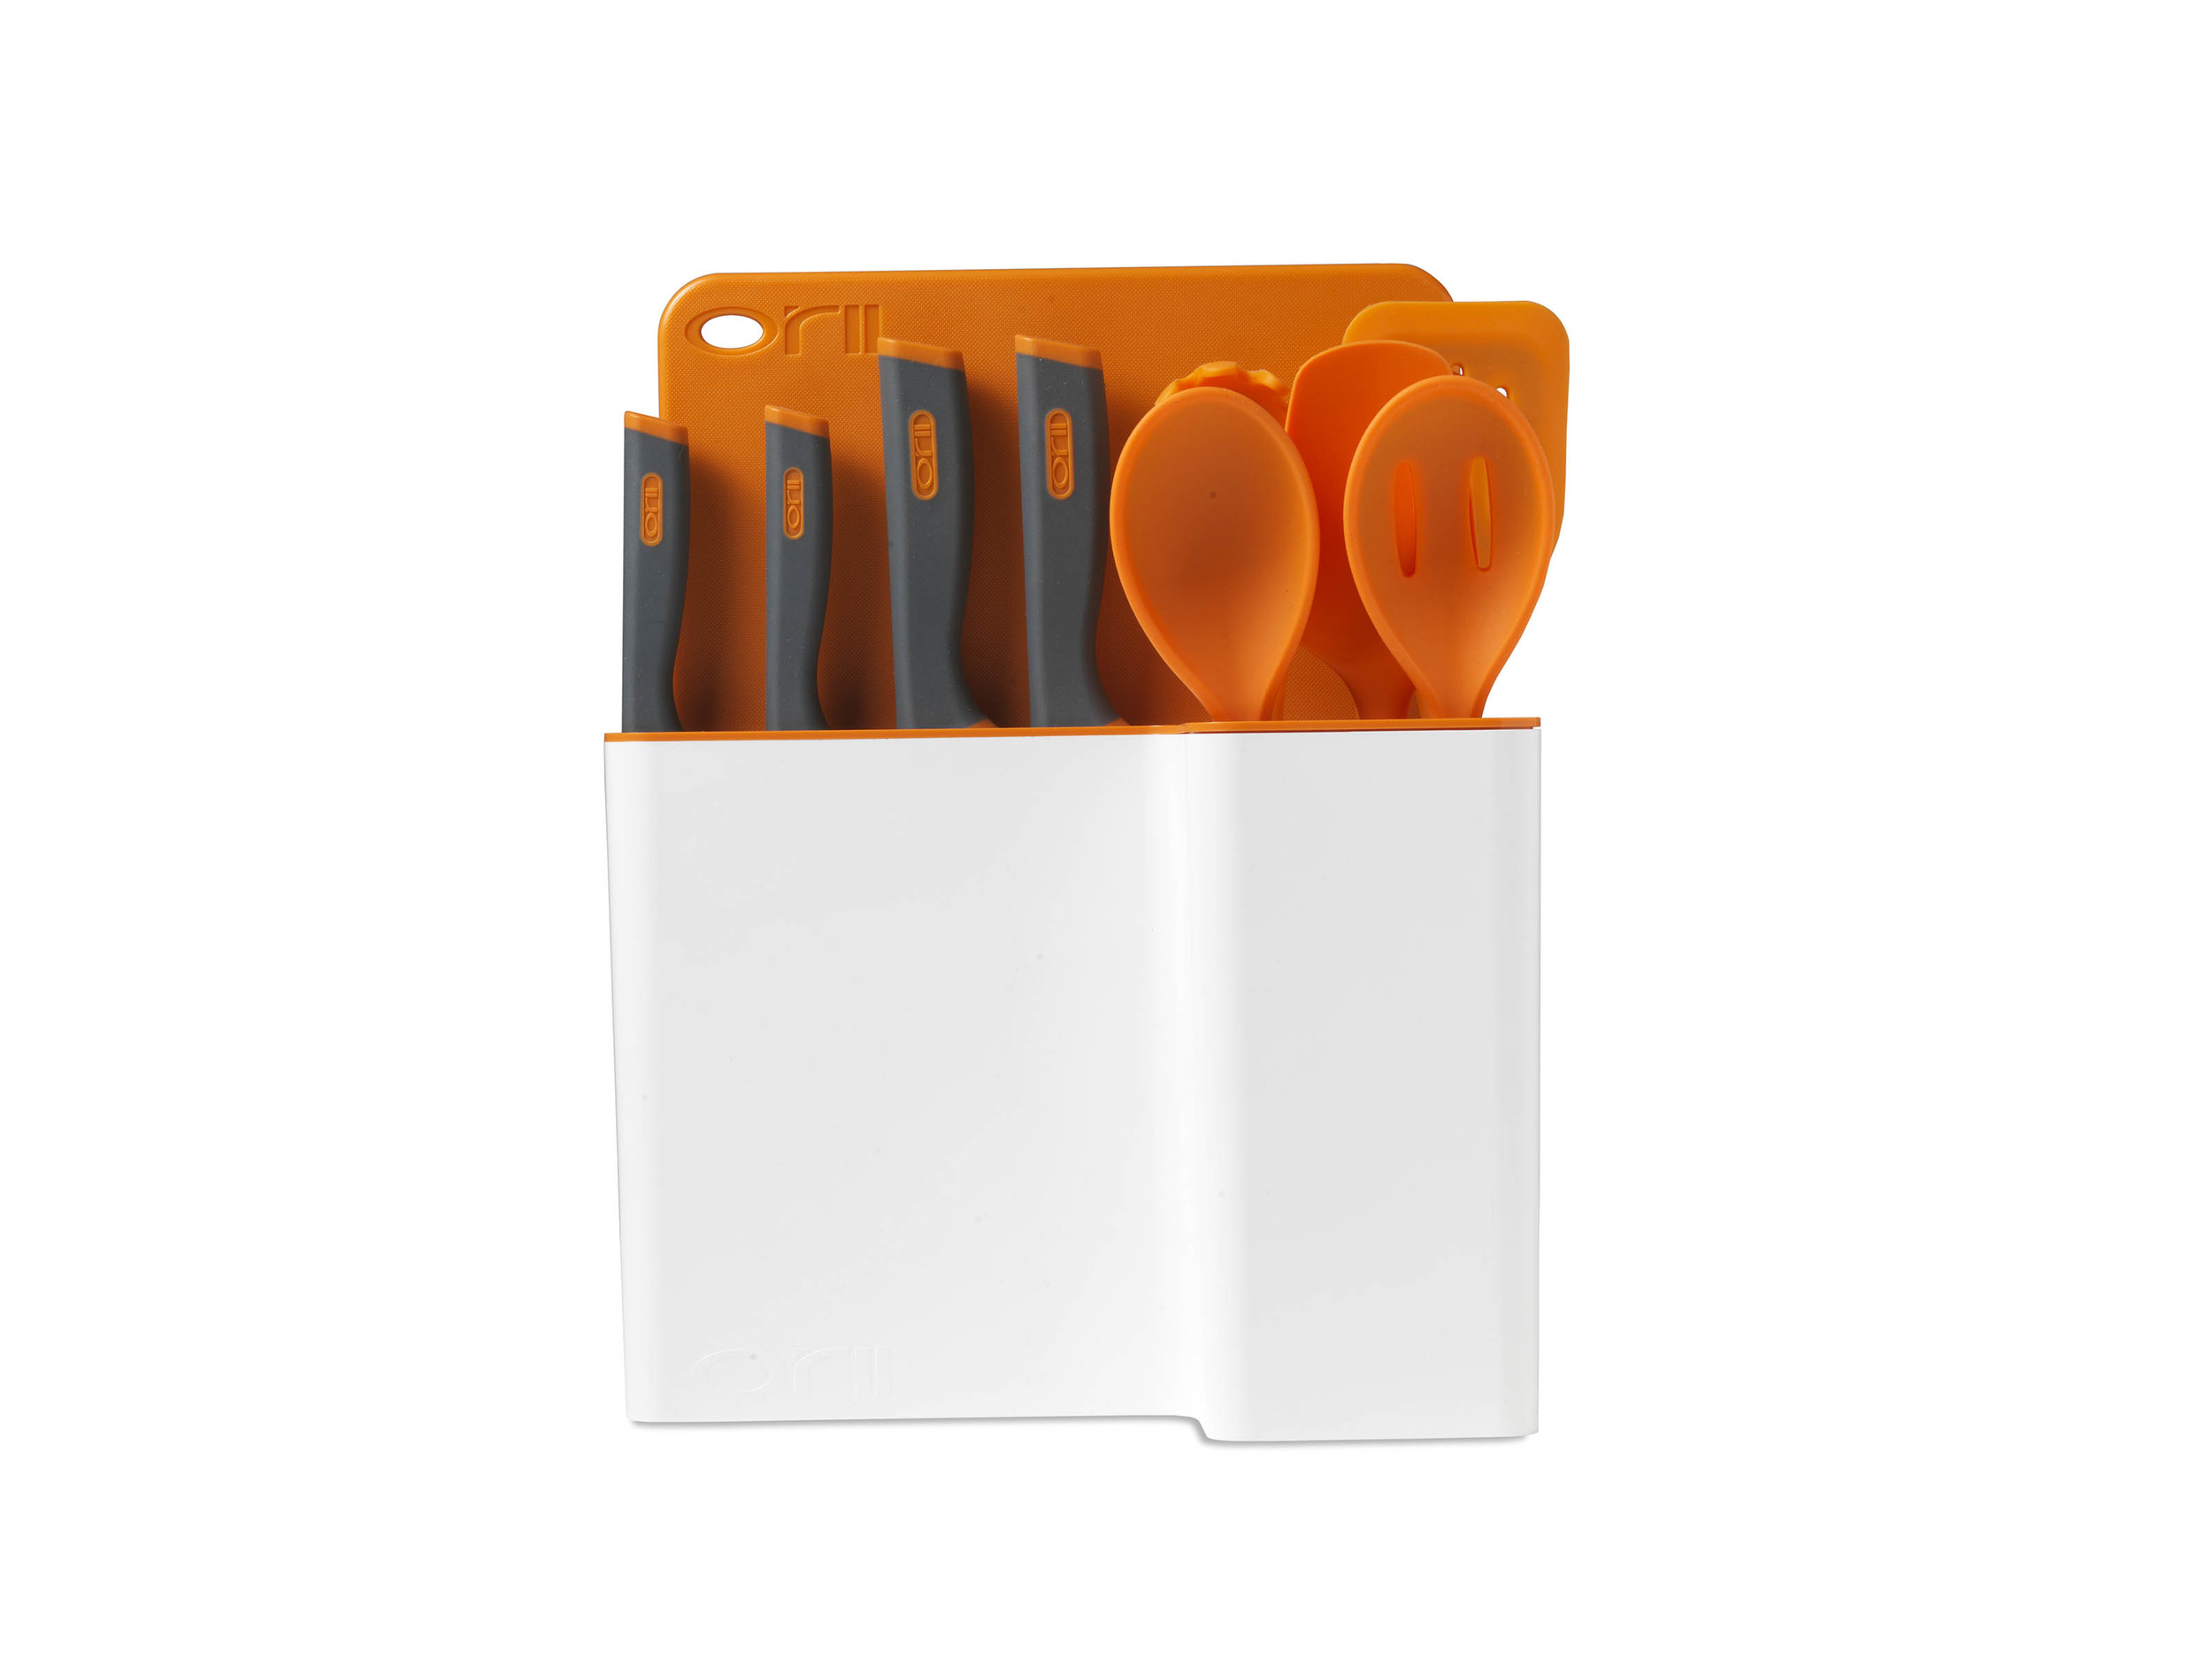 Orii 12PC MONO KITCHEN ORGANIZATION SET - LUMINOUS ORANGE